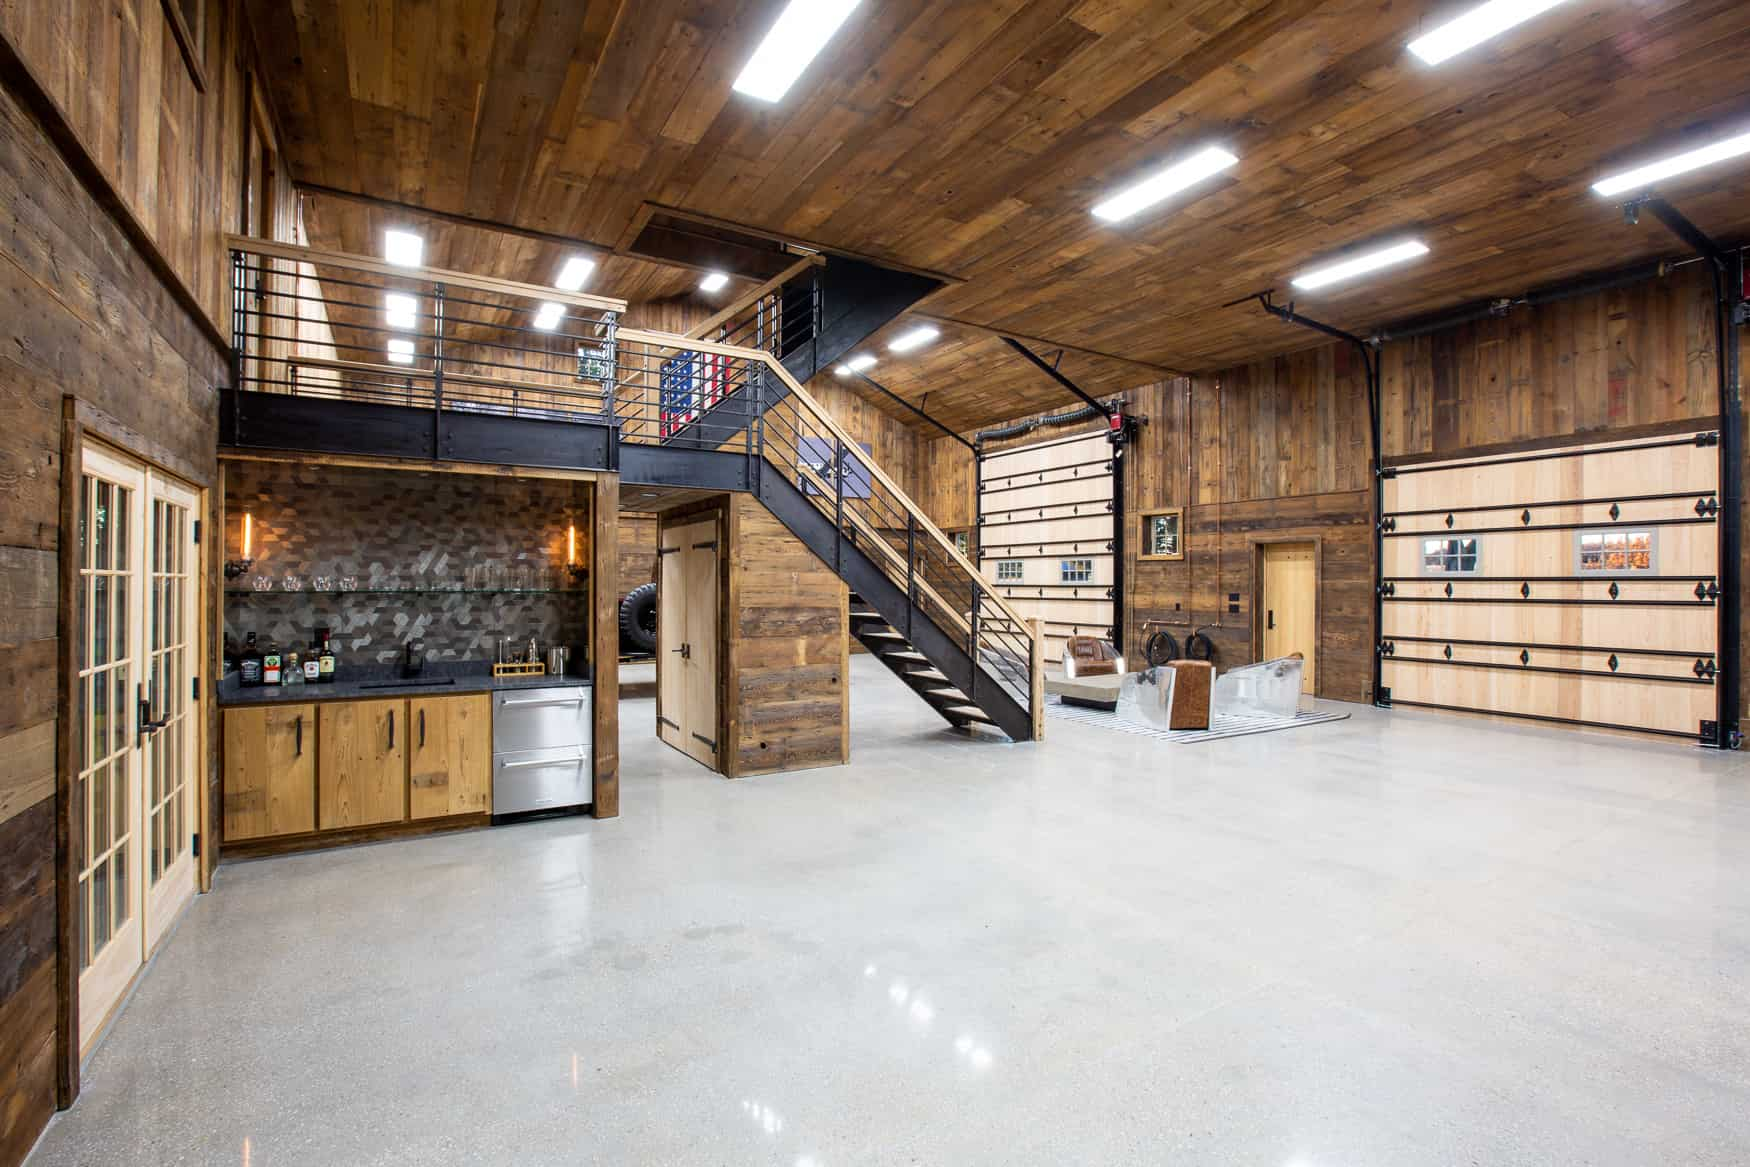 party barn interior with finished wood walls and ceiling along with grey floor